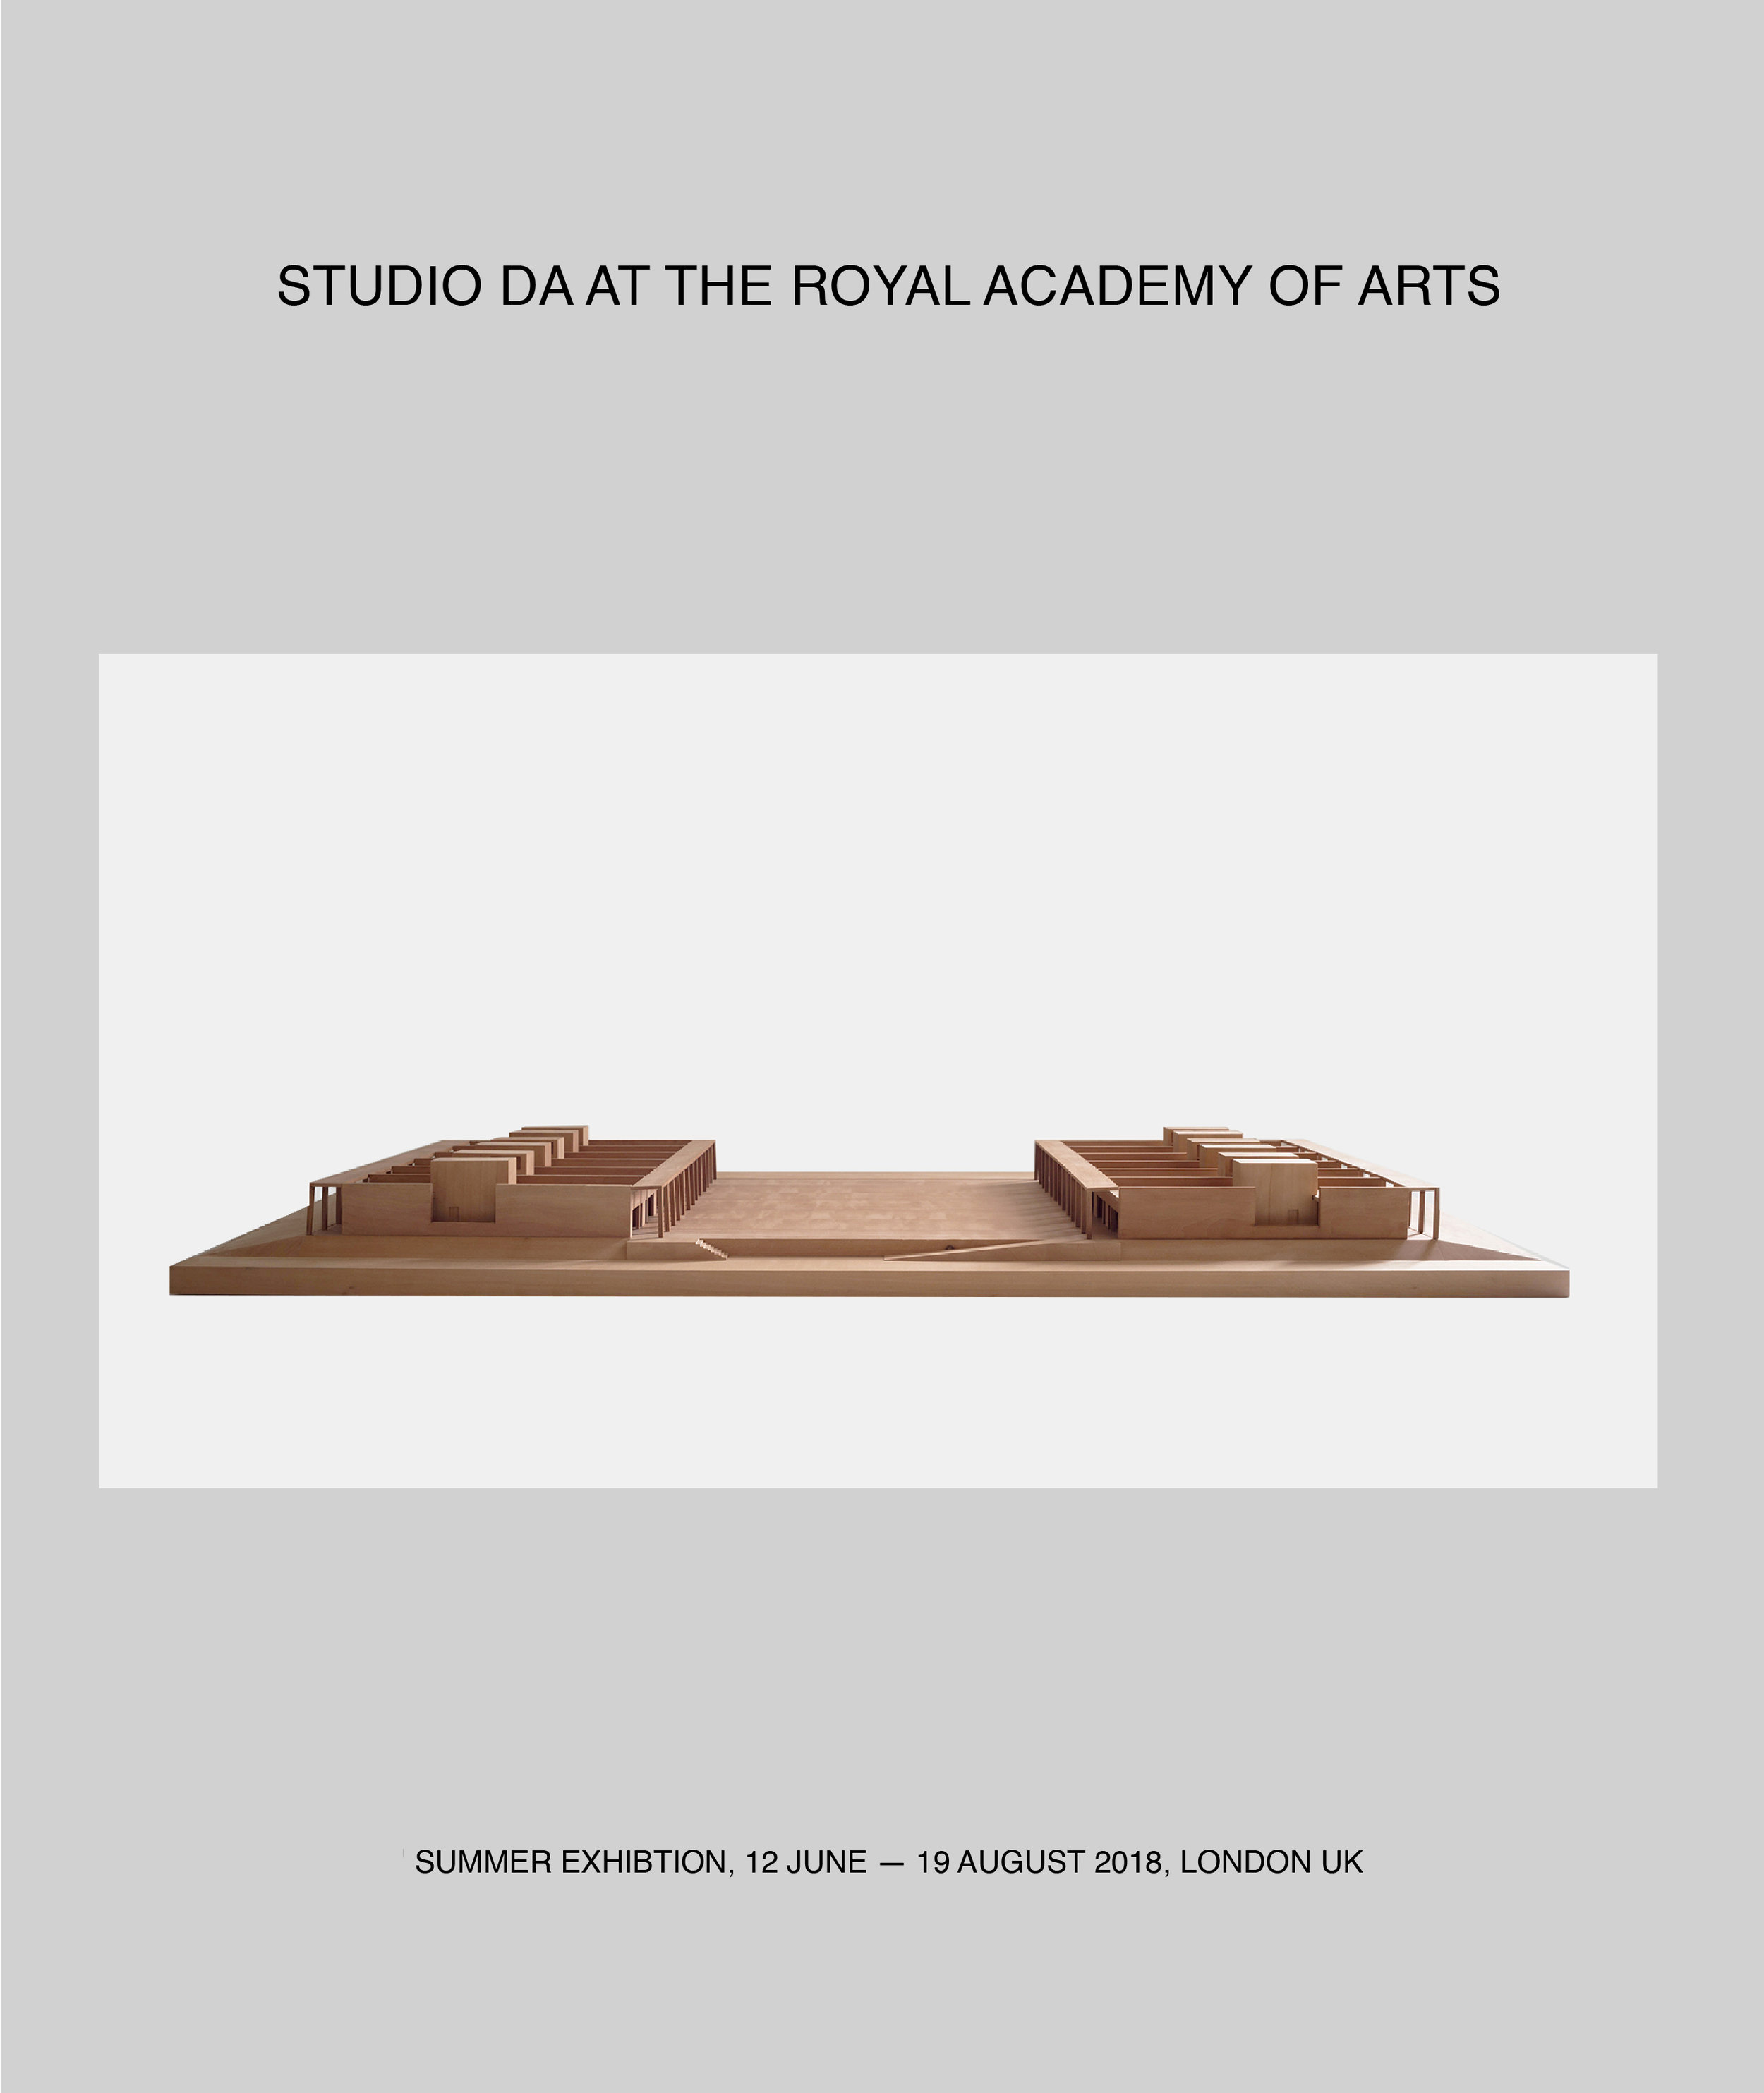 Studio DA is a new office formed by Pereen d'Avoine (   Russian for Fish   ) and Pierre d'Avoine to work on exhibitions, special small projects and competition designs. For more information go to studio DA under About.